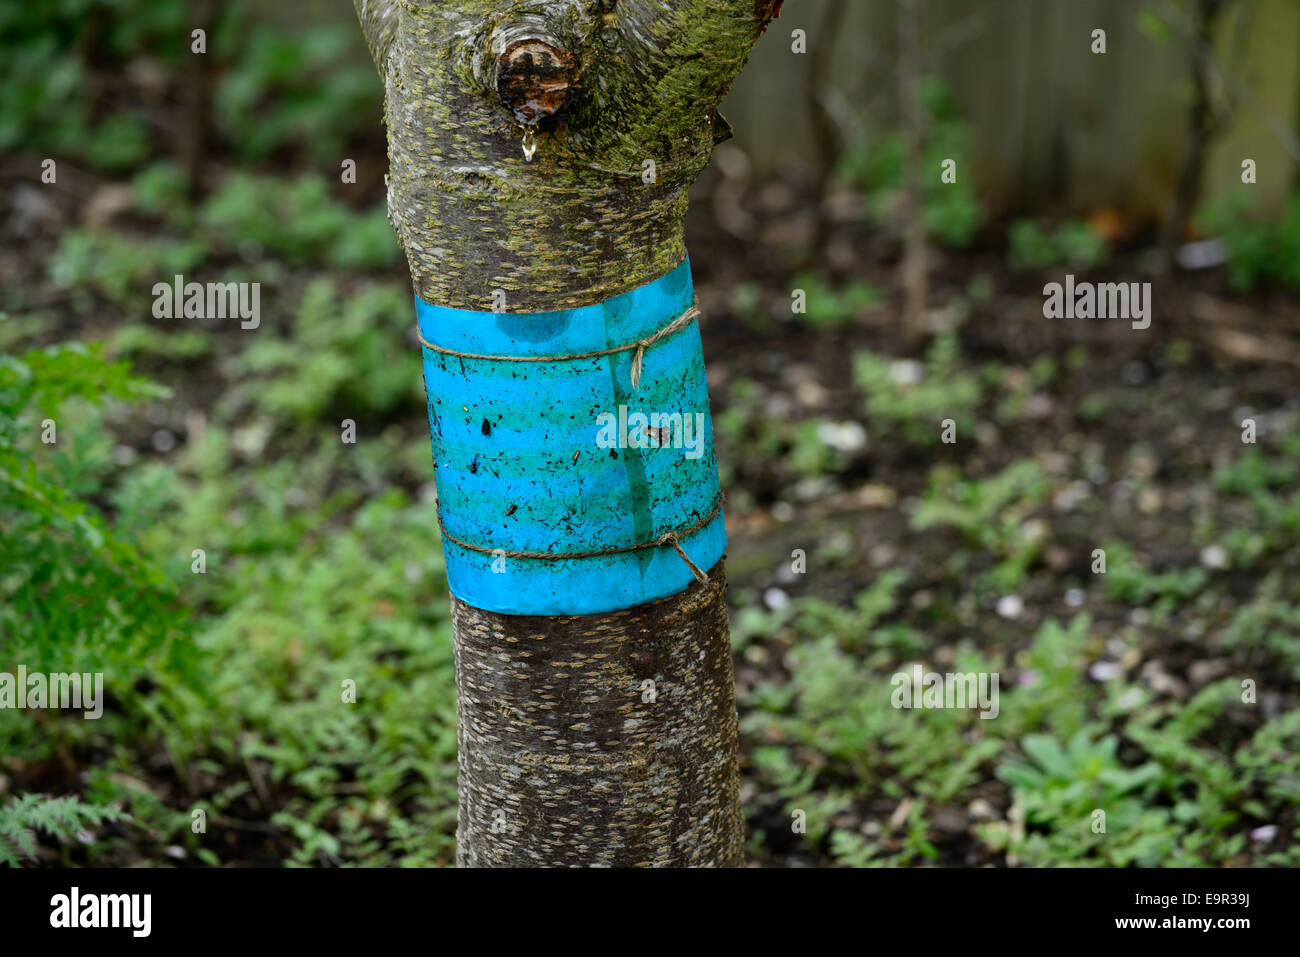 grease band trunk fruit tree bands barrier control controlling insects moth orchard pest pests protection protective - Stock Image